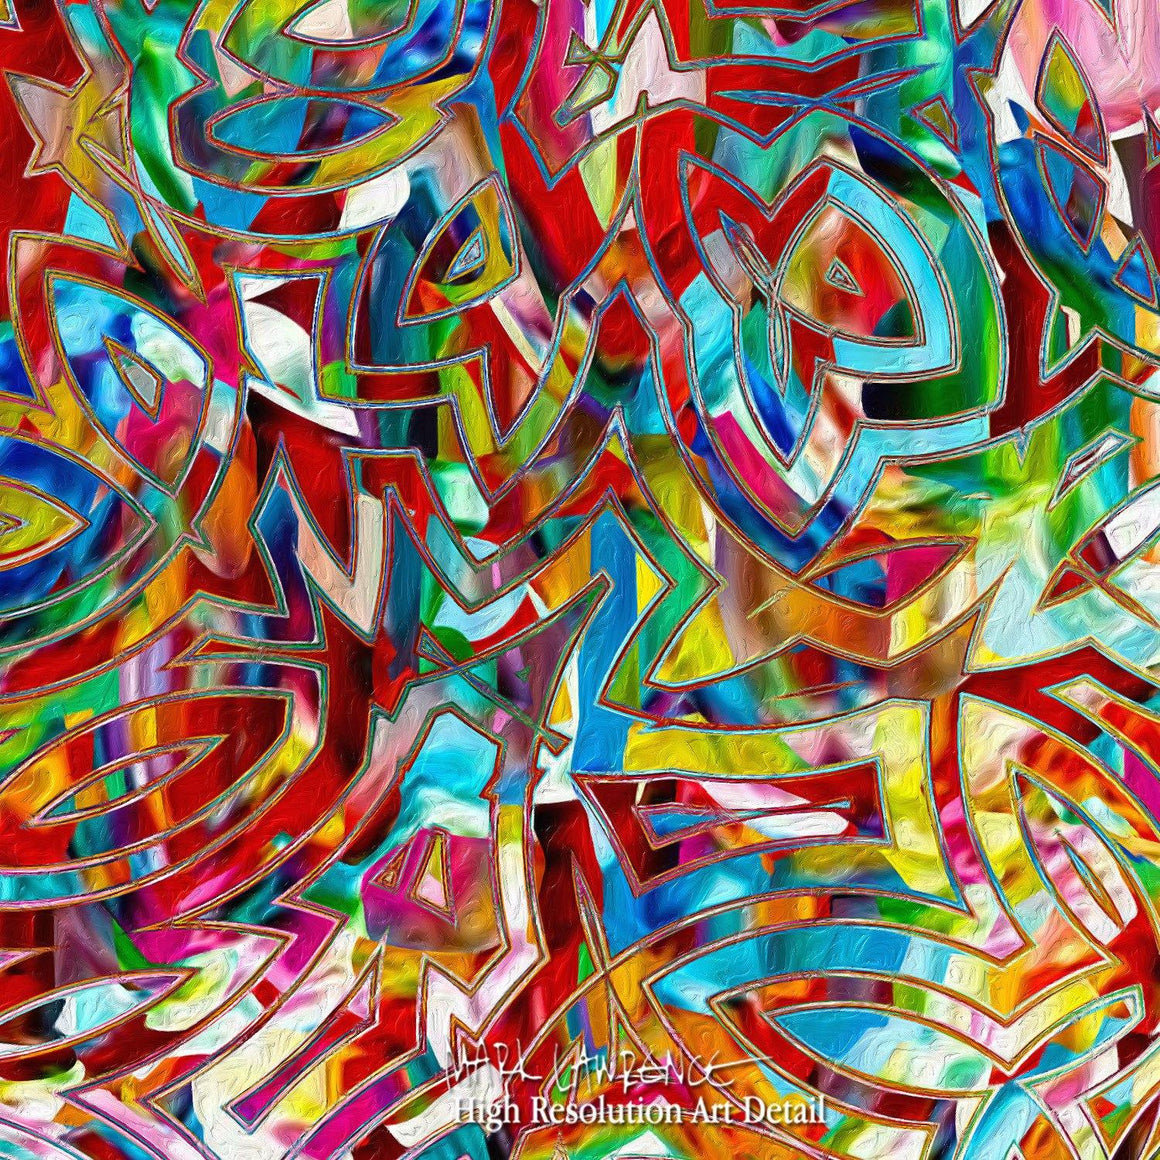 Large Painting Detail- Christian Art-Isaiah 55:7. Versevisions contemporary abstract fine art by Mark Lawrence. Artist direct original limited edition signed canvas & paper giclees